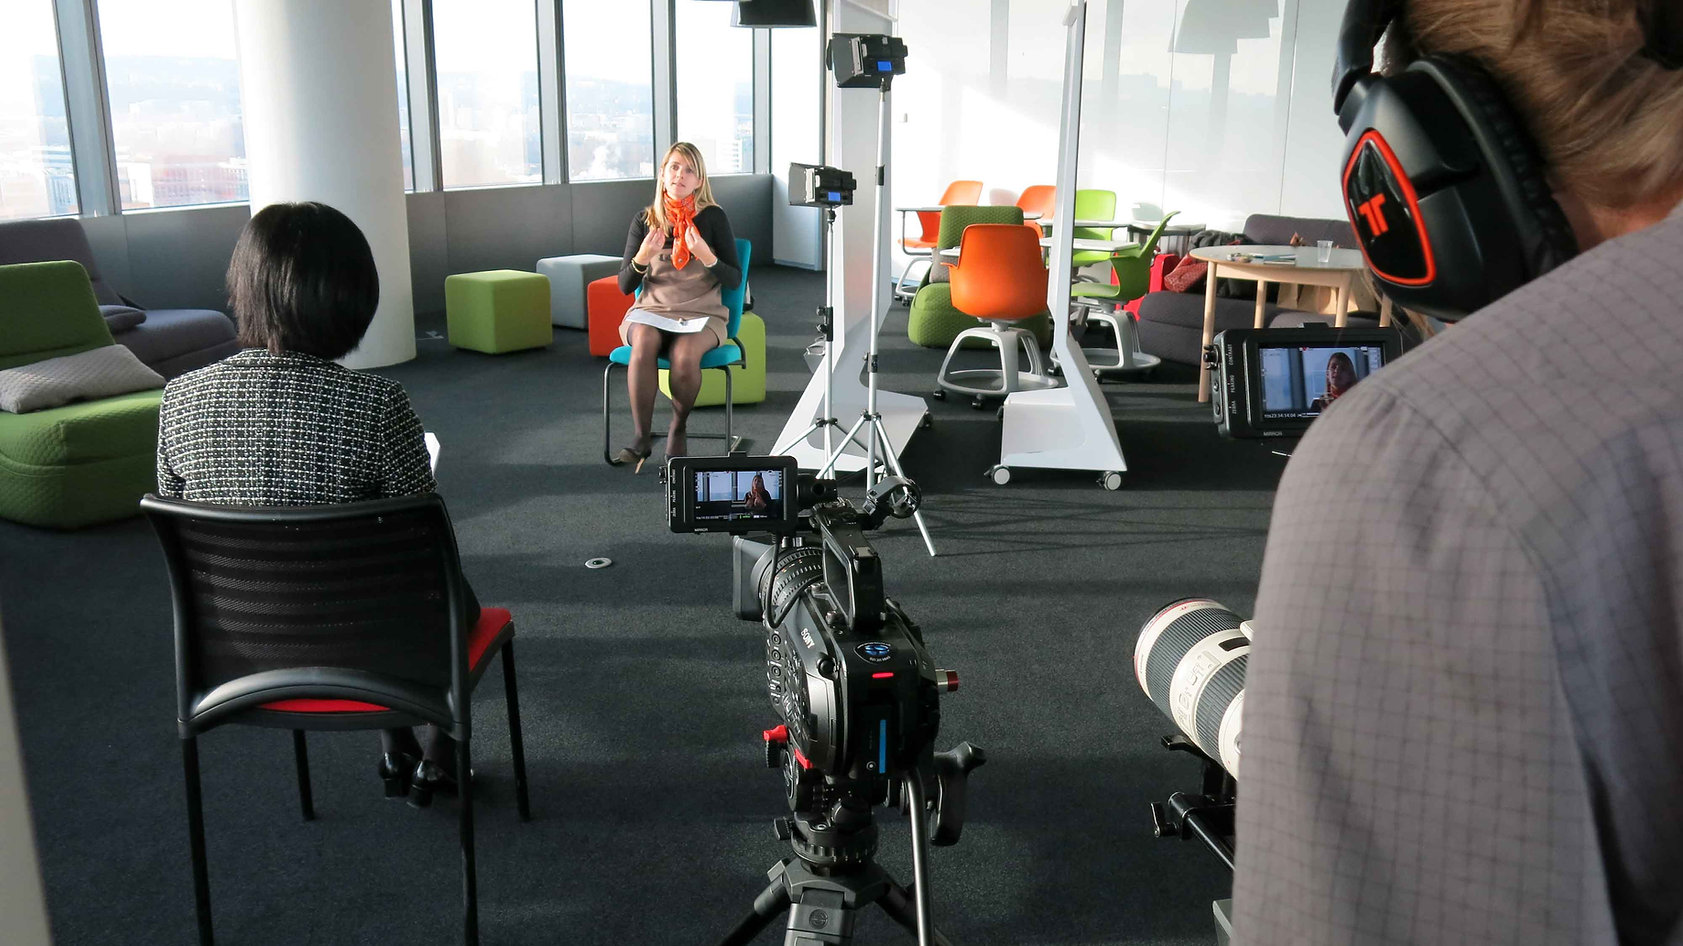 Video interview recording